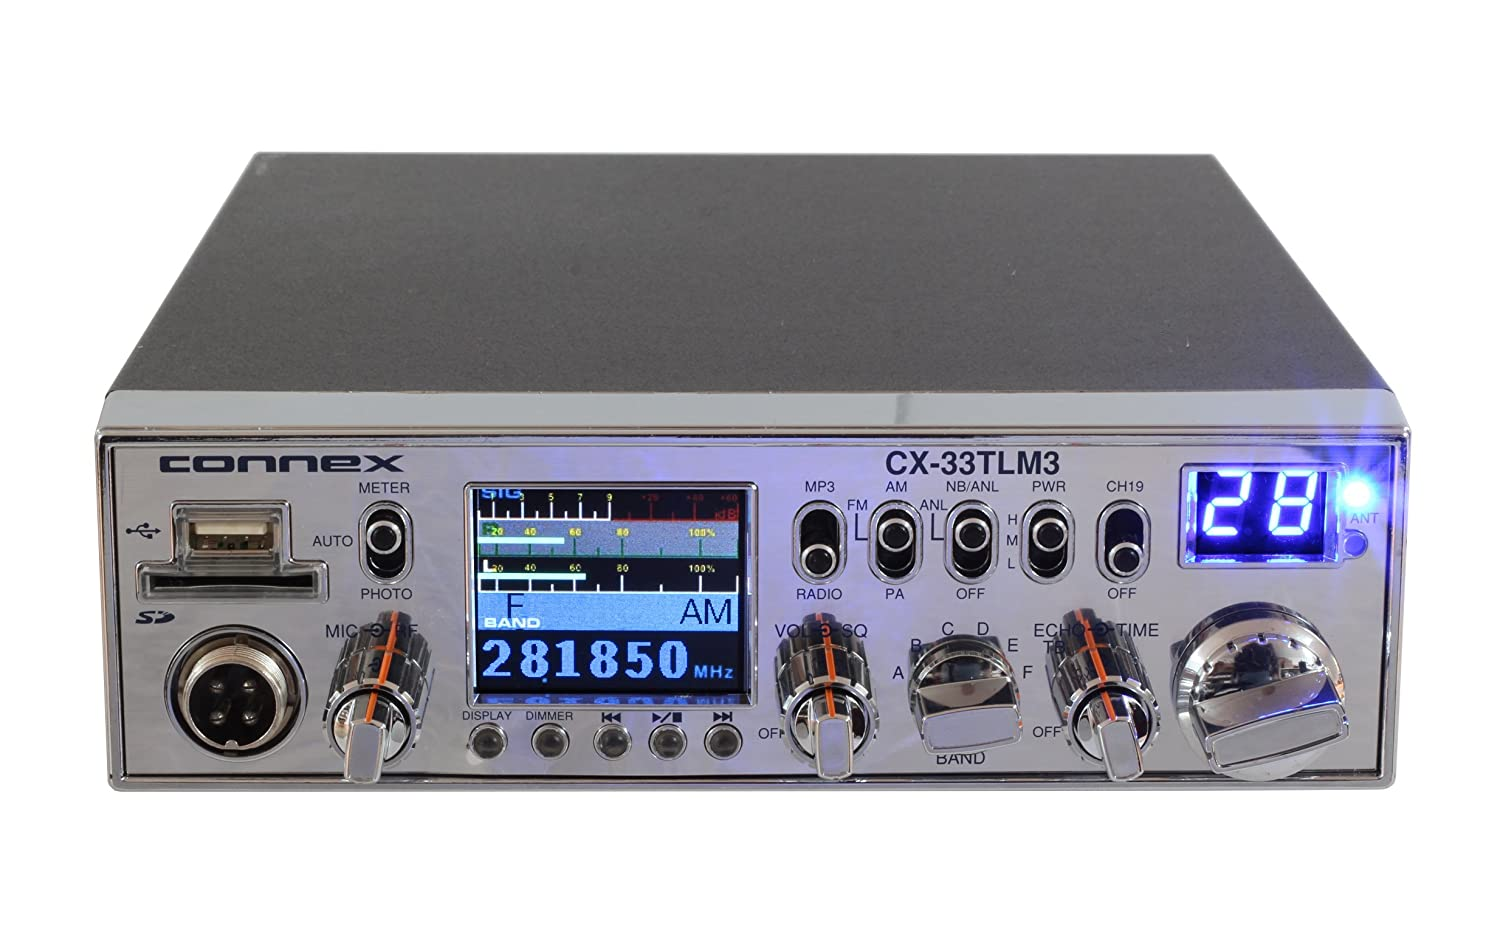 Connex CX-33TLM3 AM//FM 10 Meter Mobile Radio with TFT Display